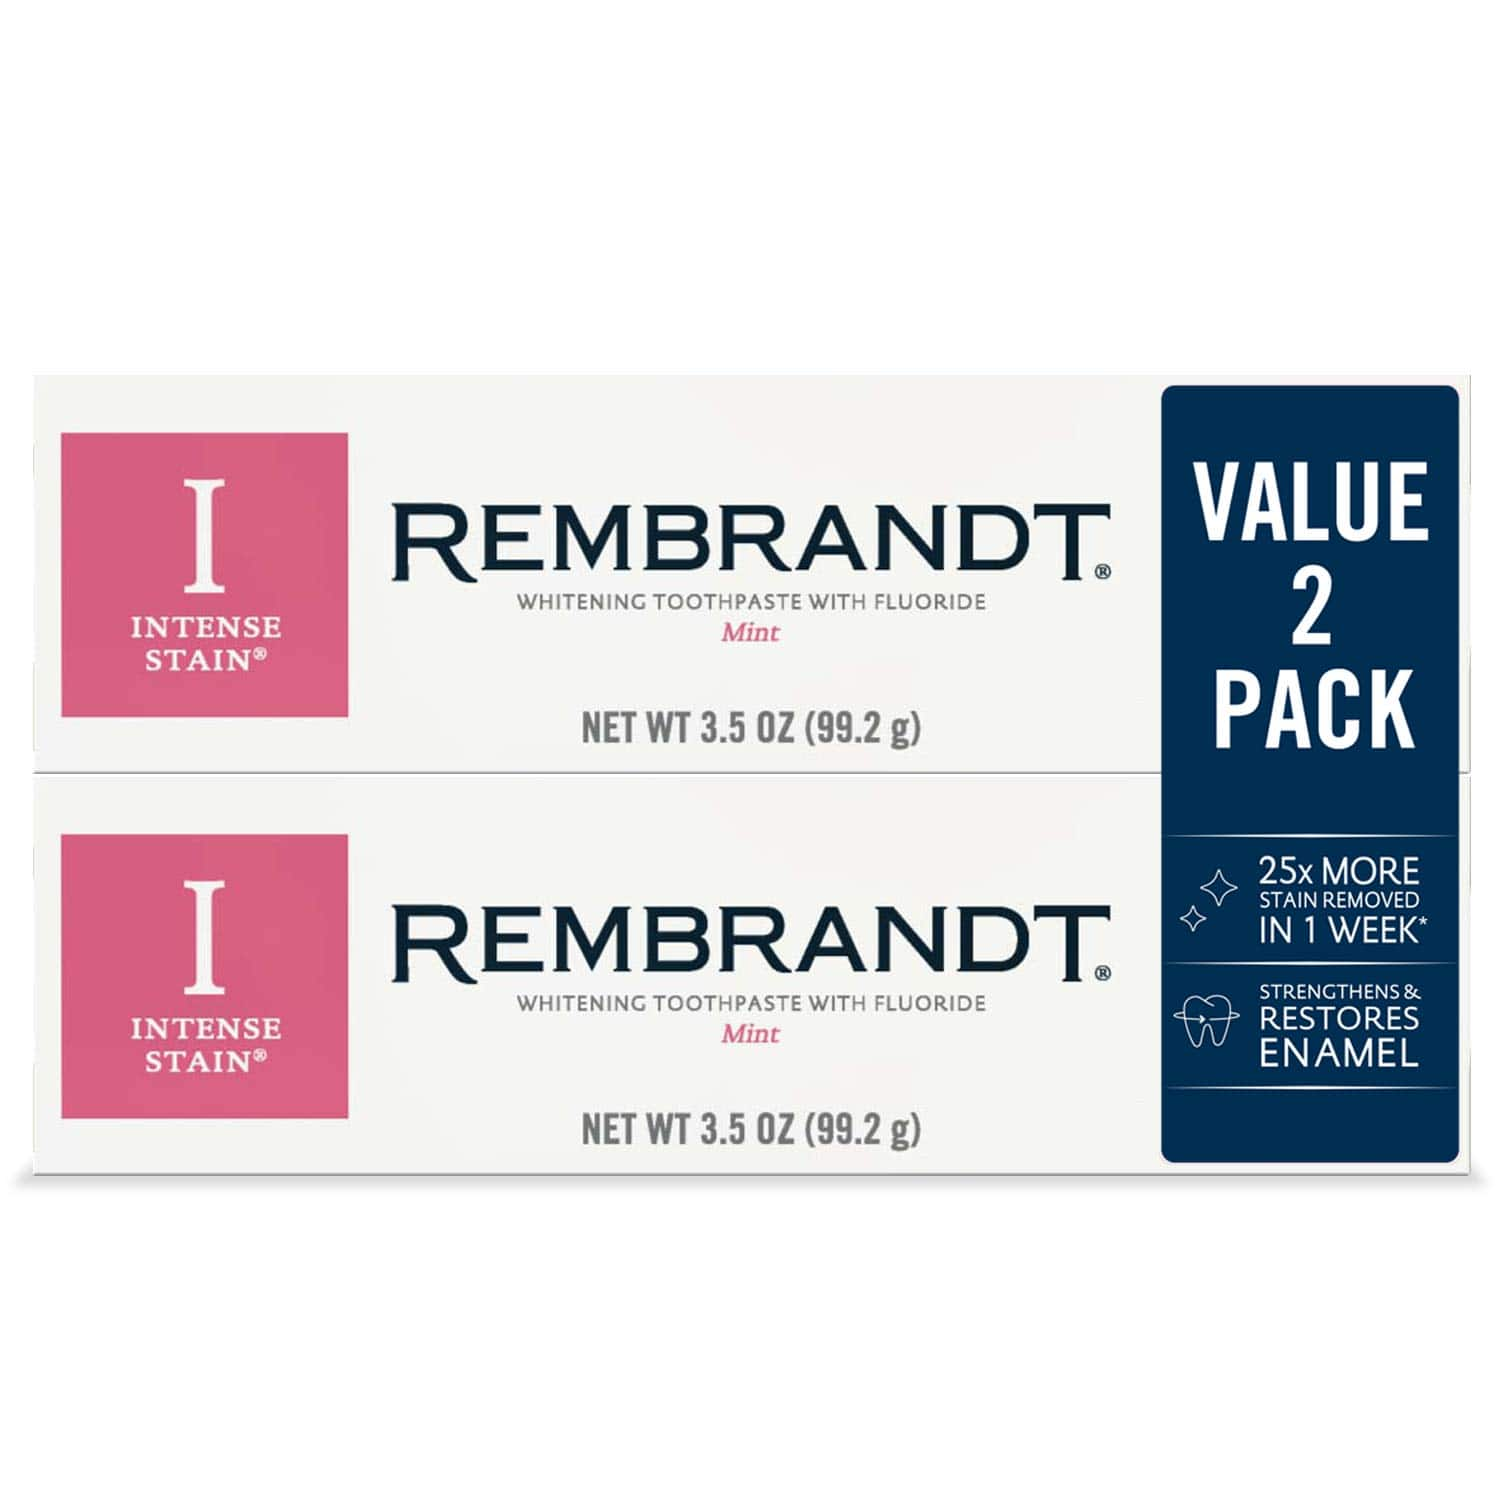 2 Count 3.5 Ounce Tubes Rembrandt Rembrandt Intense Stain Whitening Toothpaste Mint Flavor - $6.91 AC & S&S ($5.97 AC & 5 S&S Orders) - Amazon